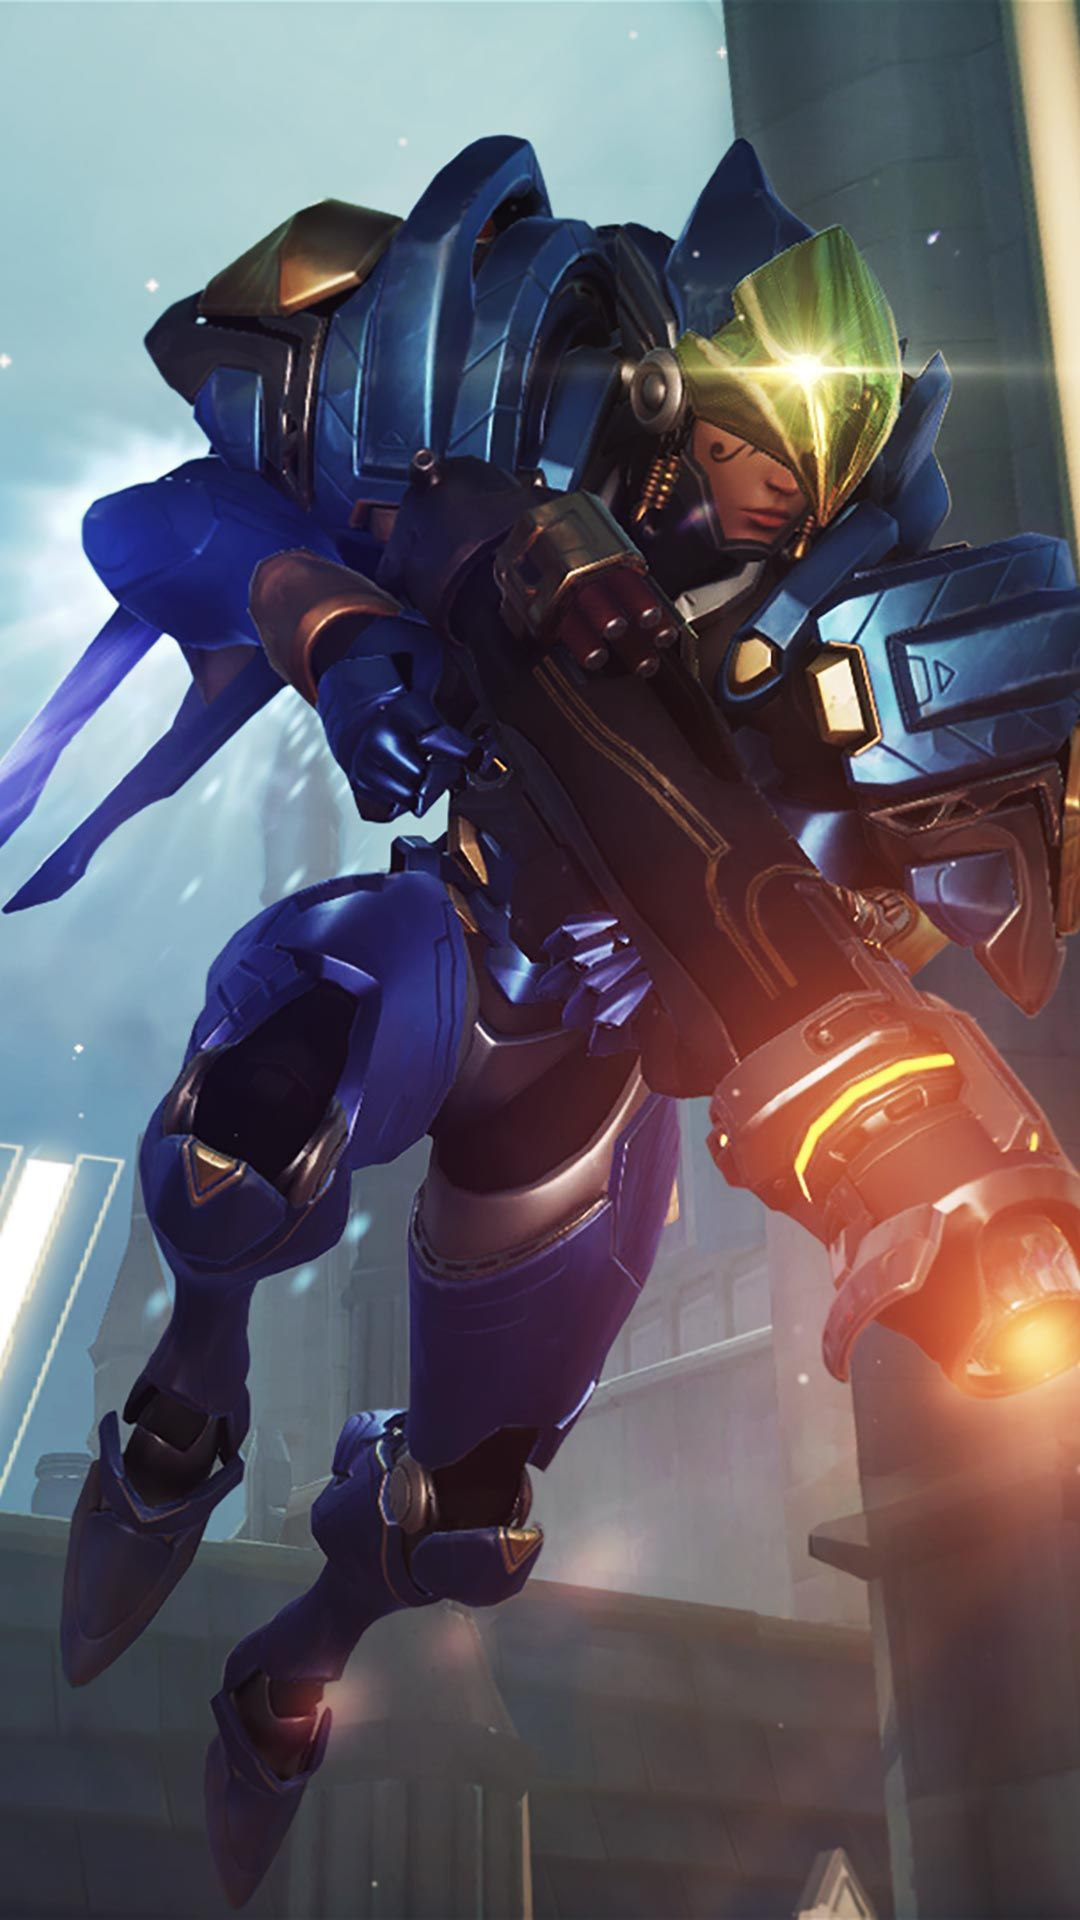 Pharah Rocket Launcher android, iphone wallpaper, mobile